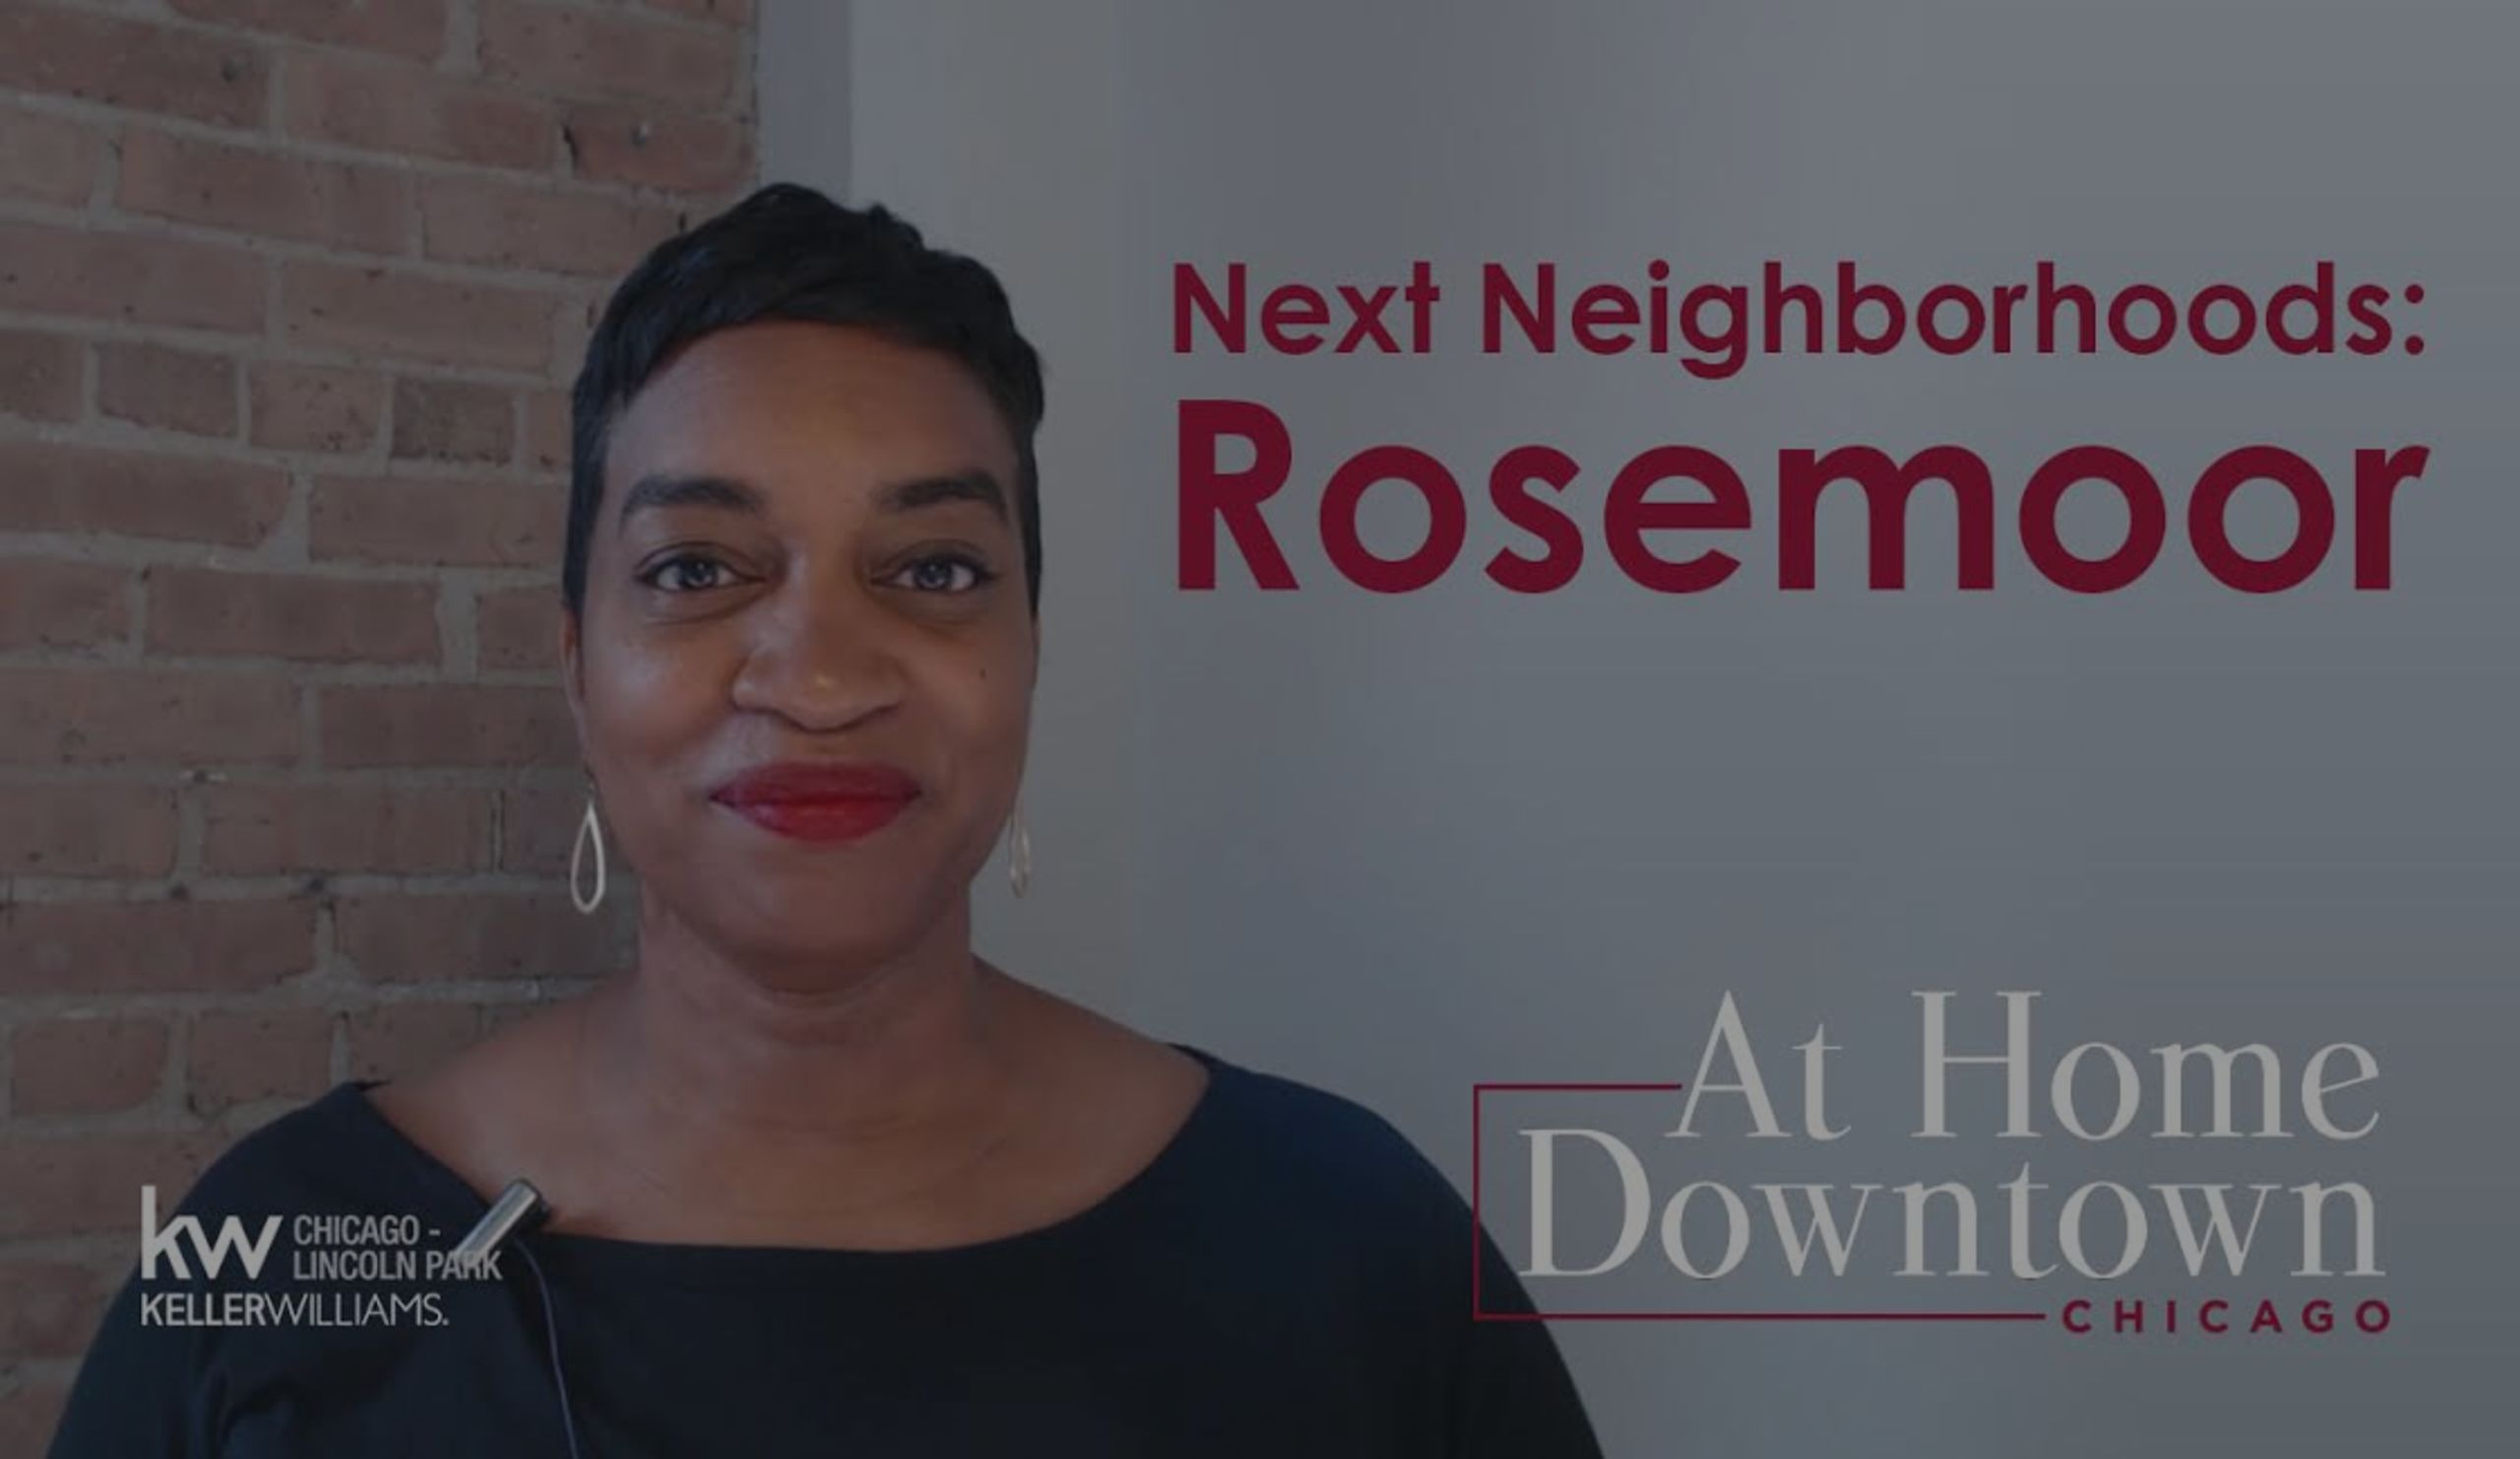 Chicago's Next Hot Neighborhood: Rosemoor